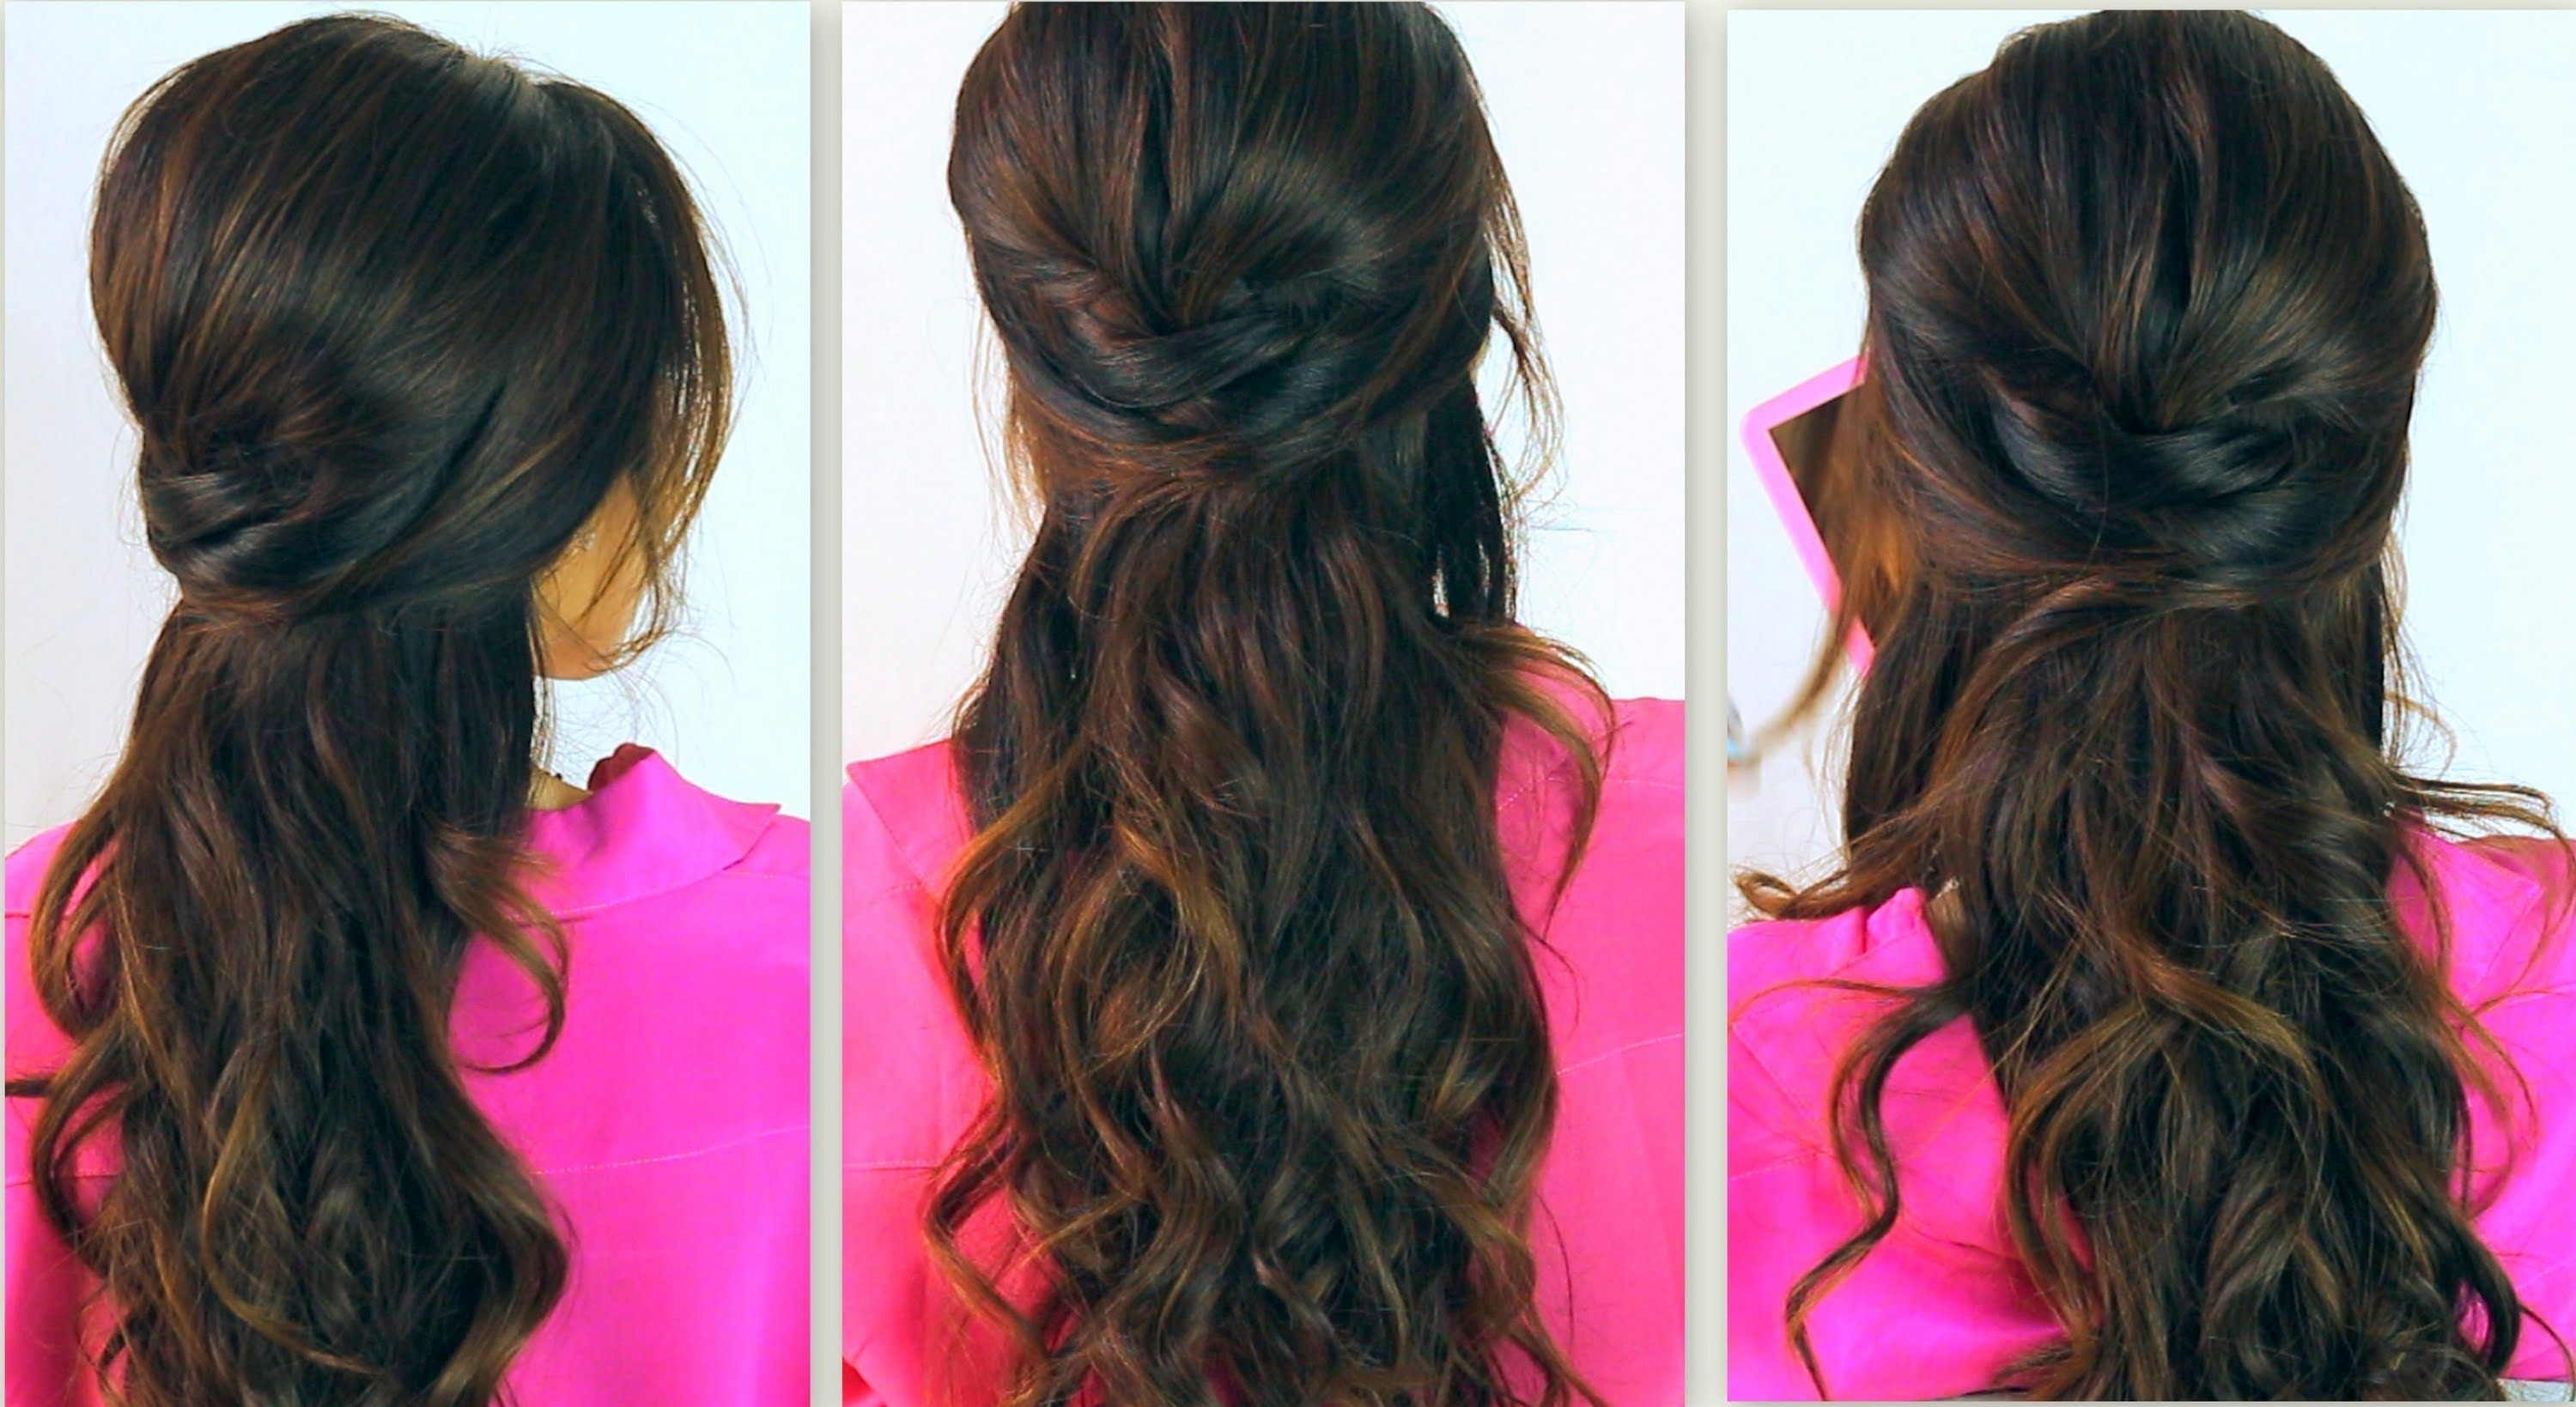 ☆CUTE BACK-TO-SCHOOL HAIRSTYLES  EVERYDAY POOFY CURLY HALF-UP